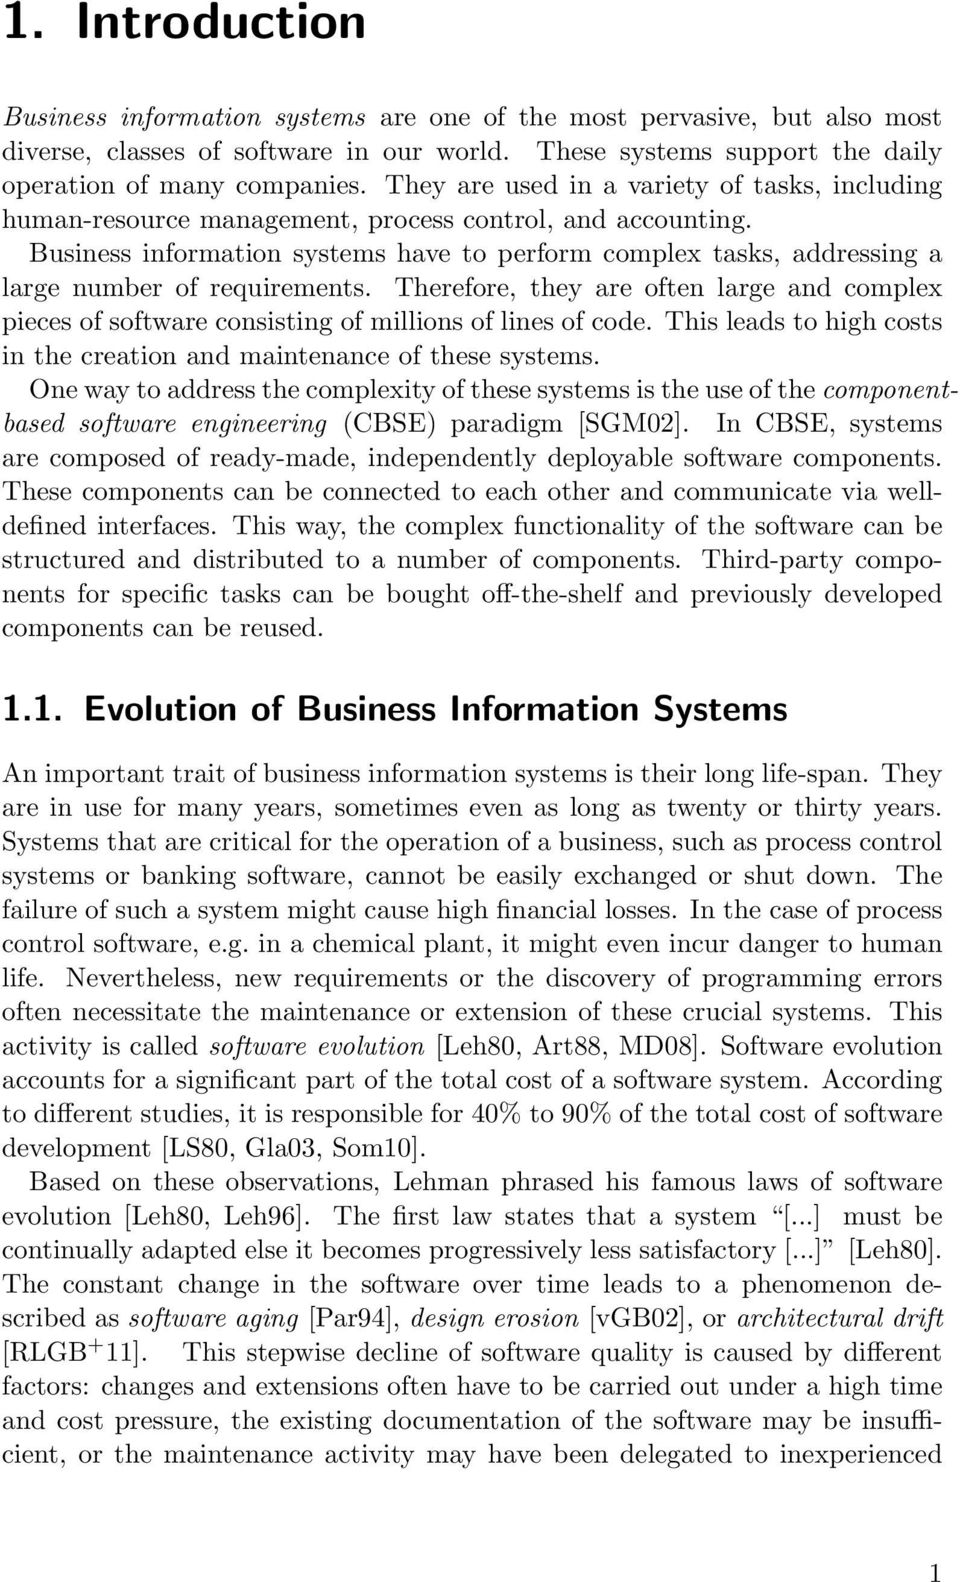 Business information systems have to perform complex tasks, addressing a large number of requirements.